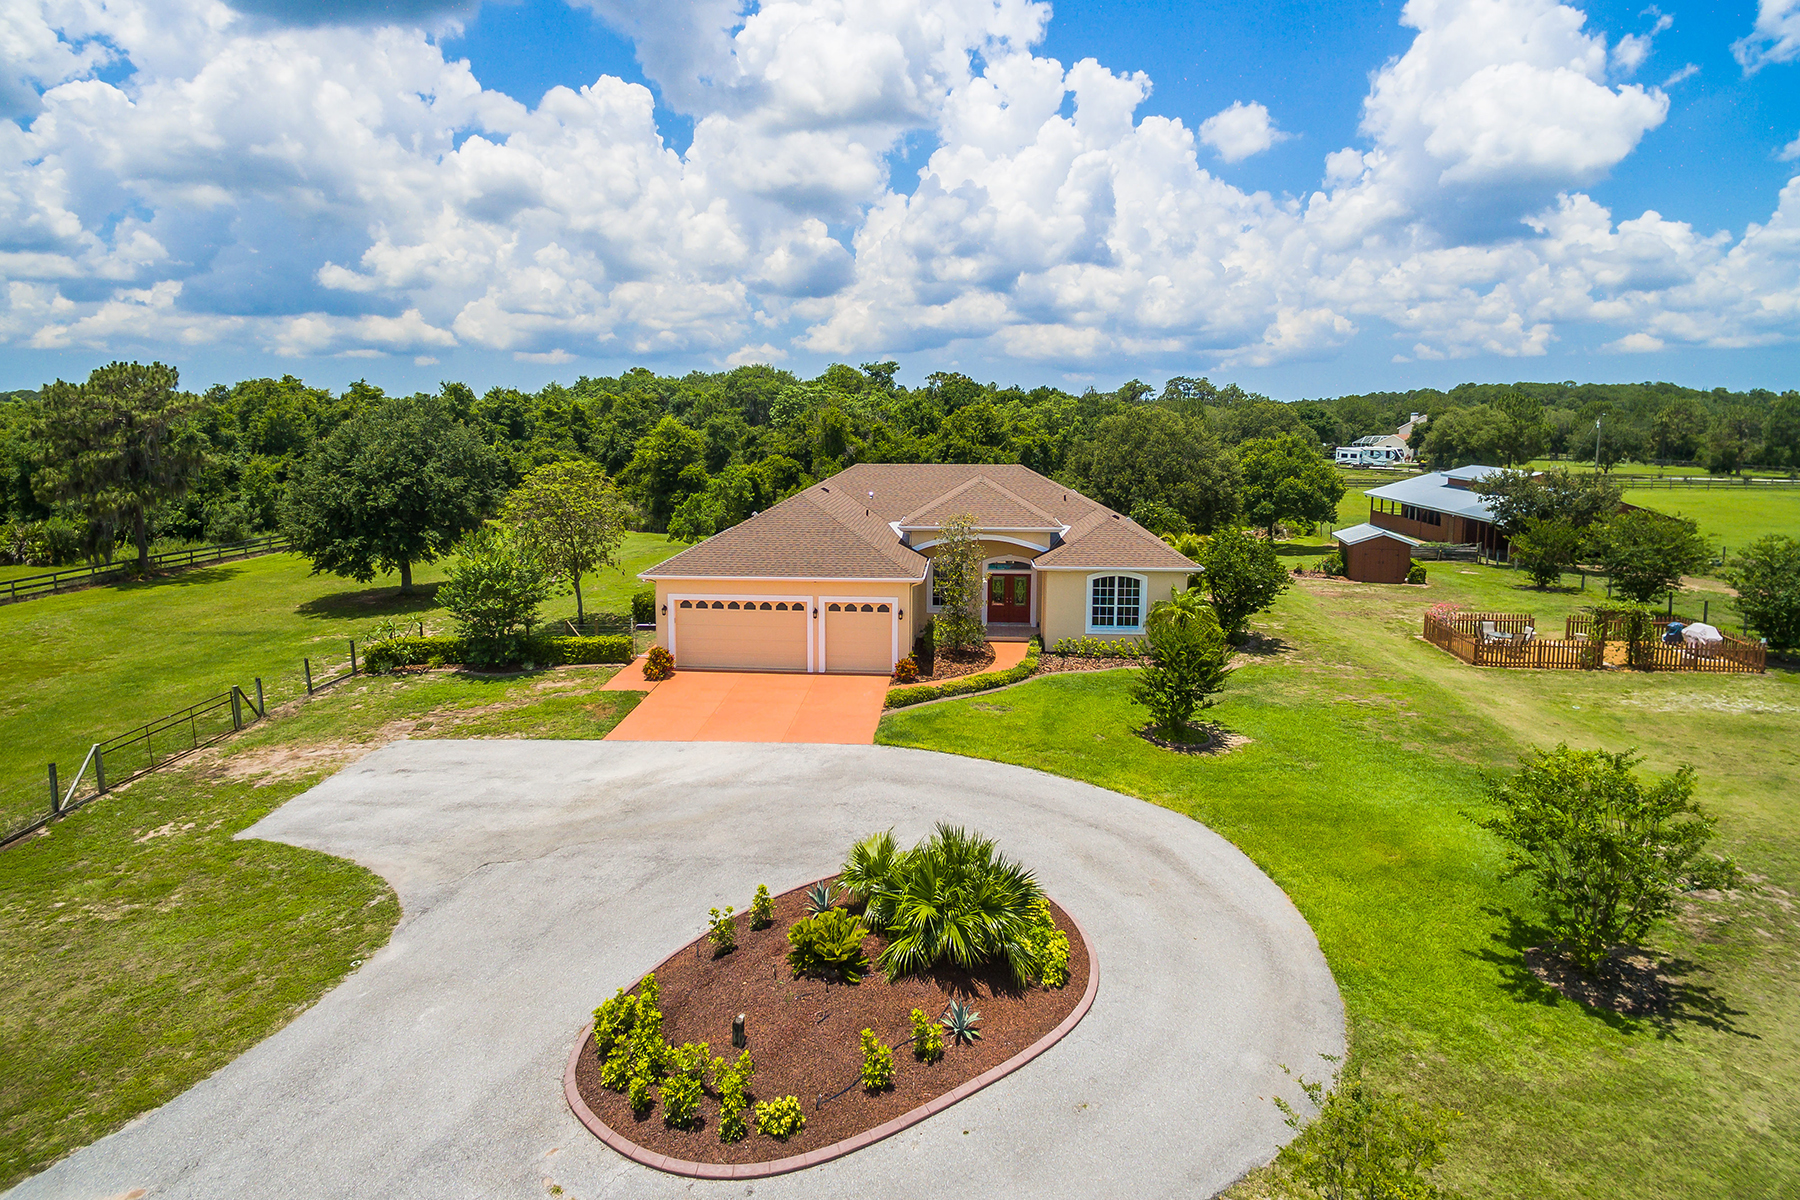 Casa Unifamiliar por un Venta en PANTHER RIDGE 6620 225th St E Bradenton, Florida, 34211 Estados Unidos